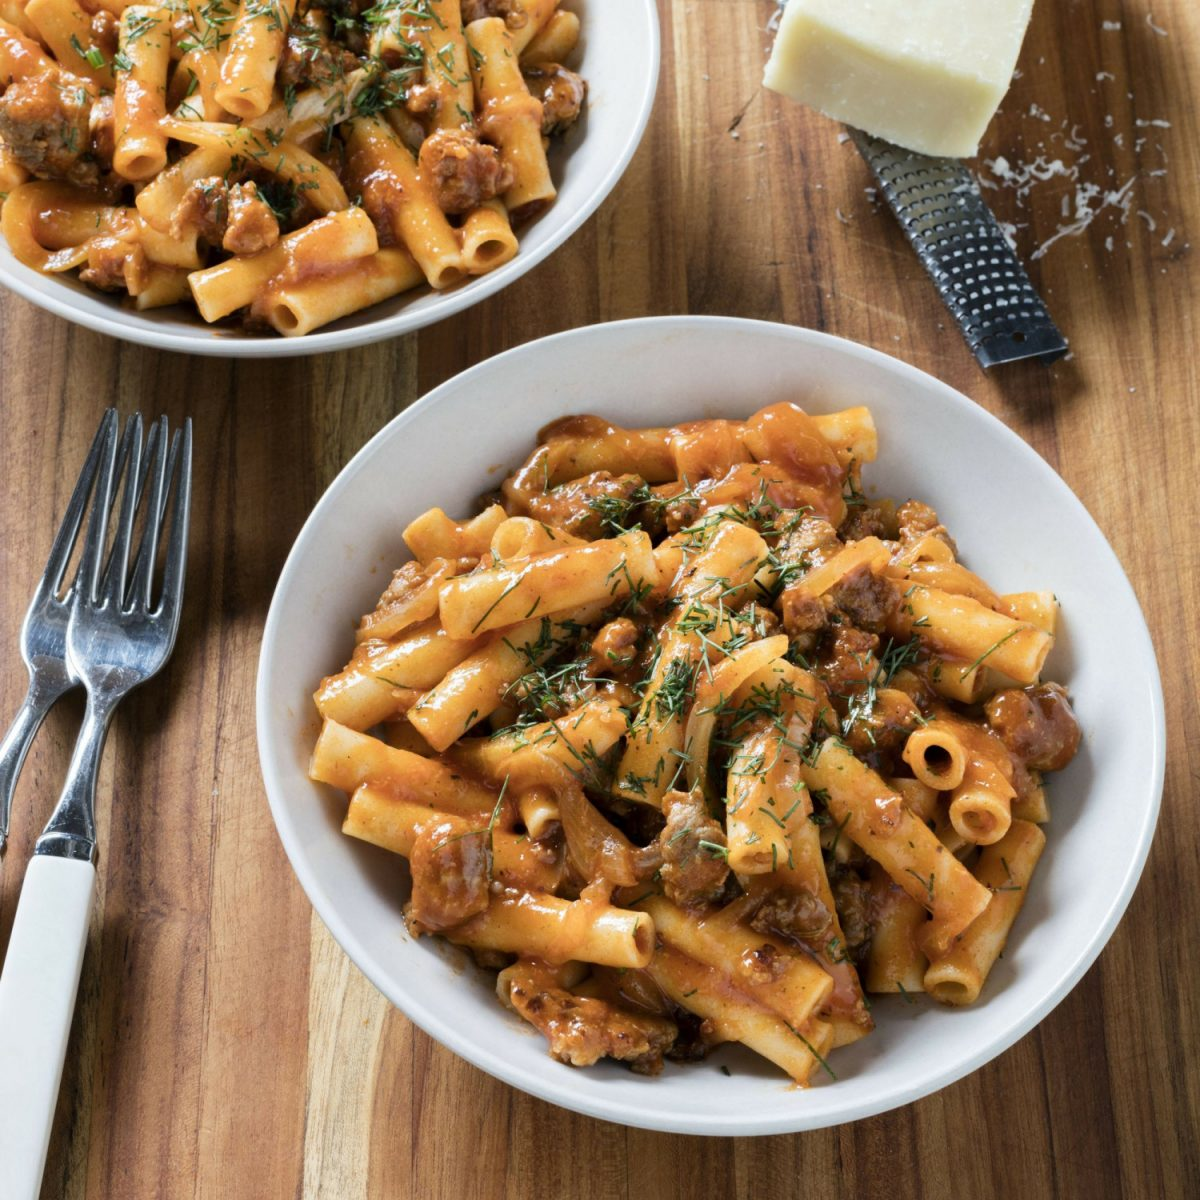 Ziti with Fennel and Italian Sausage in Brookline, Mass